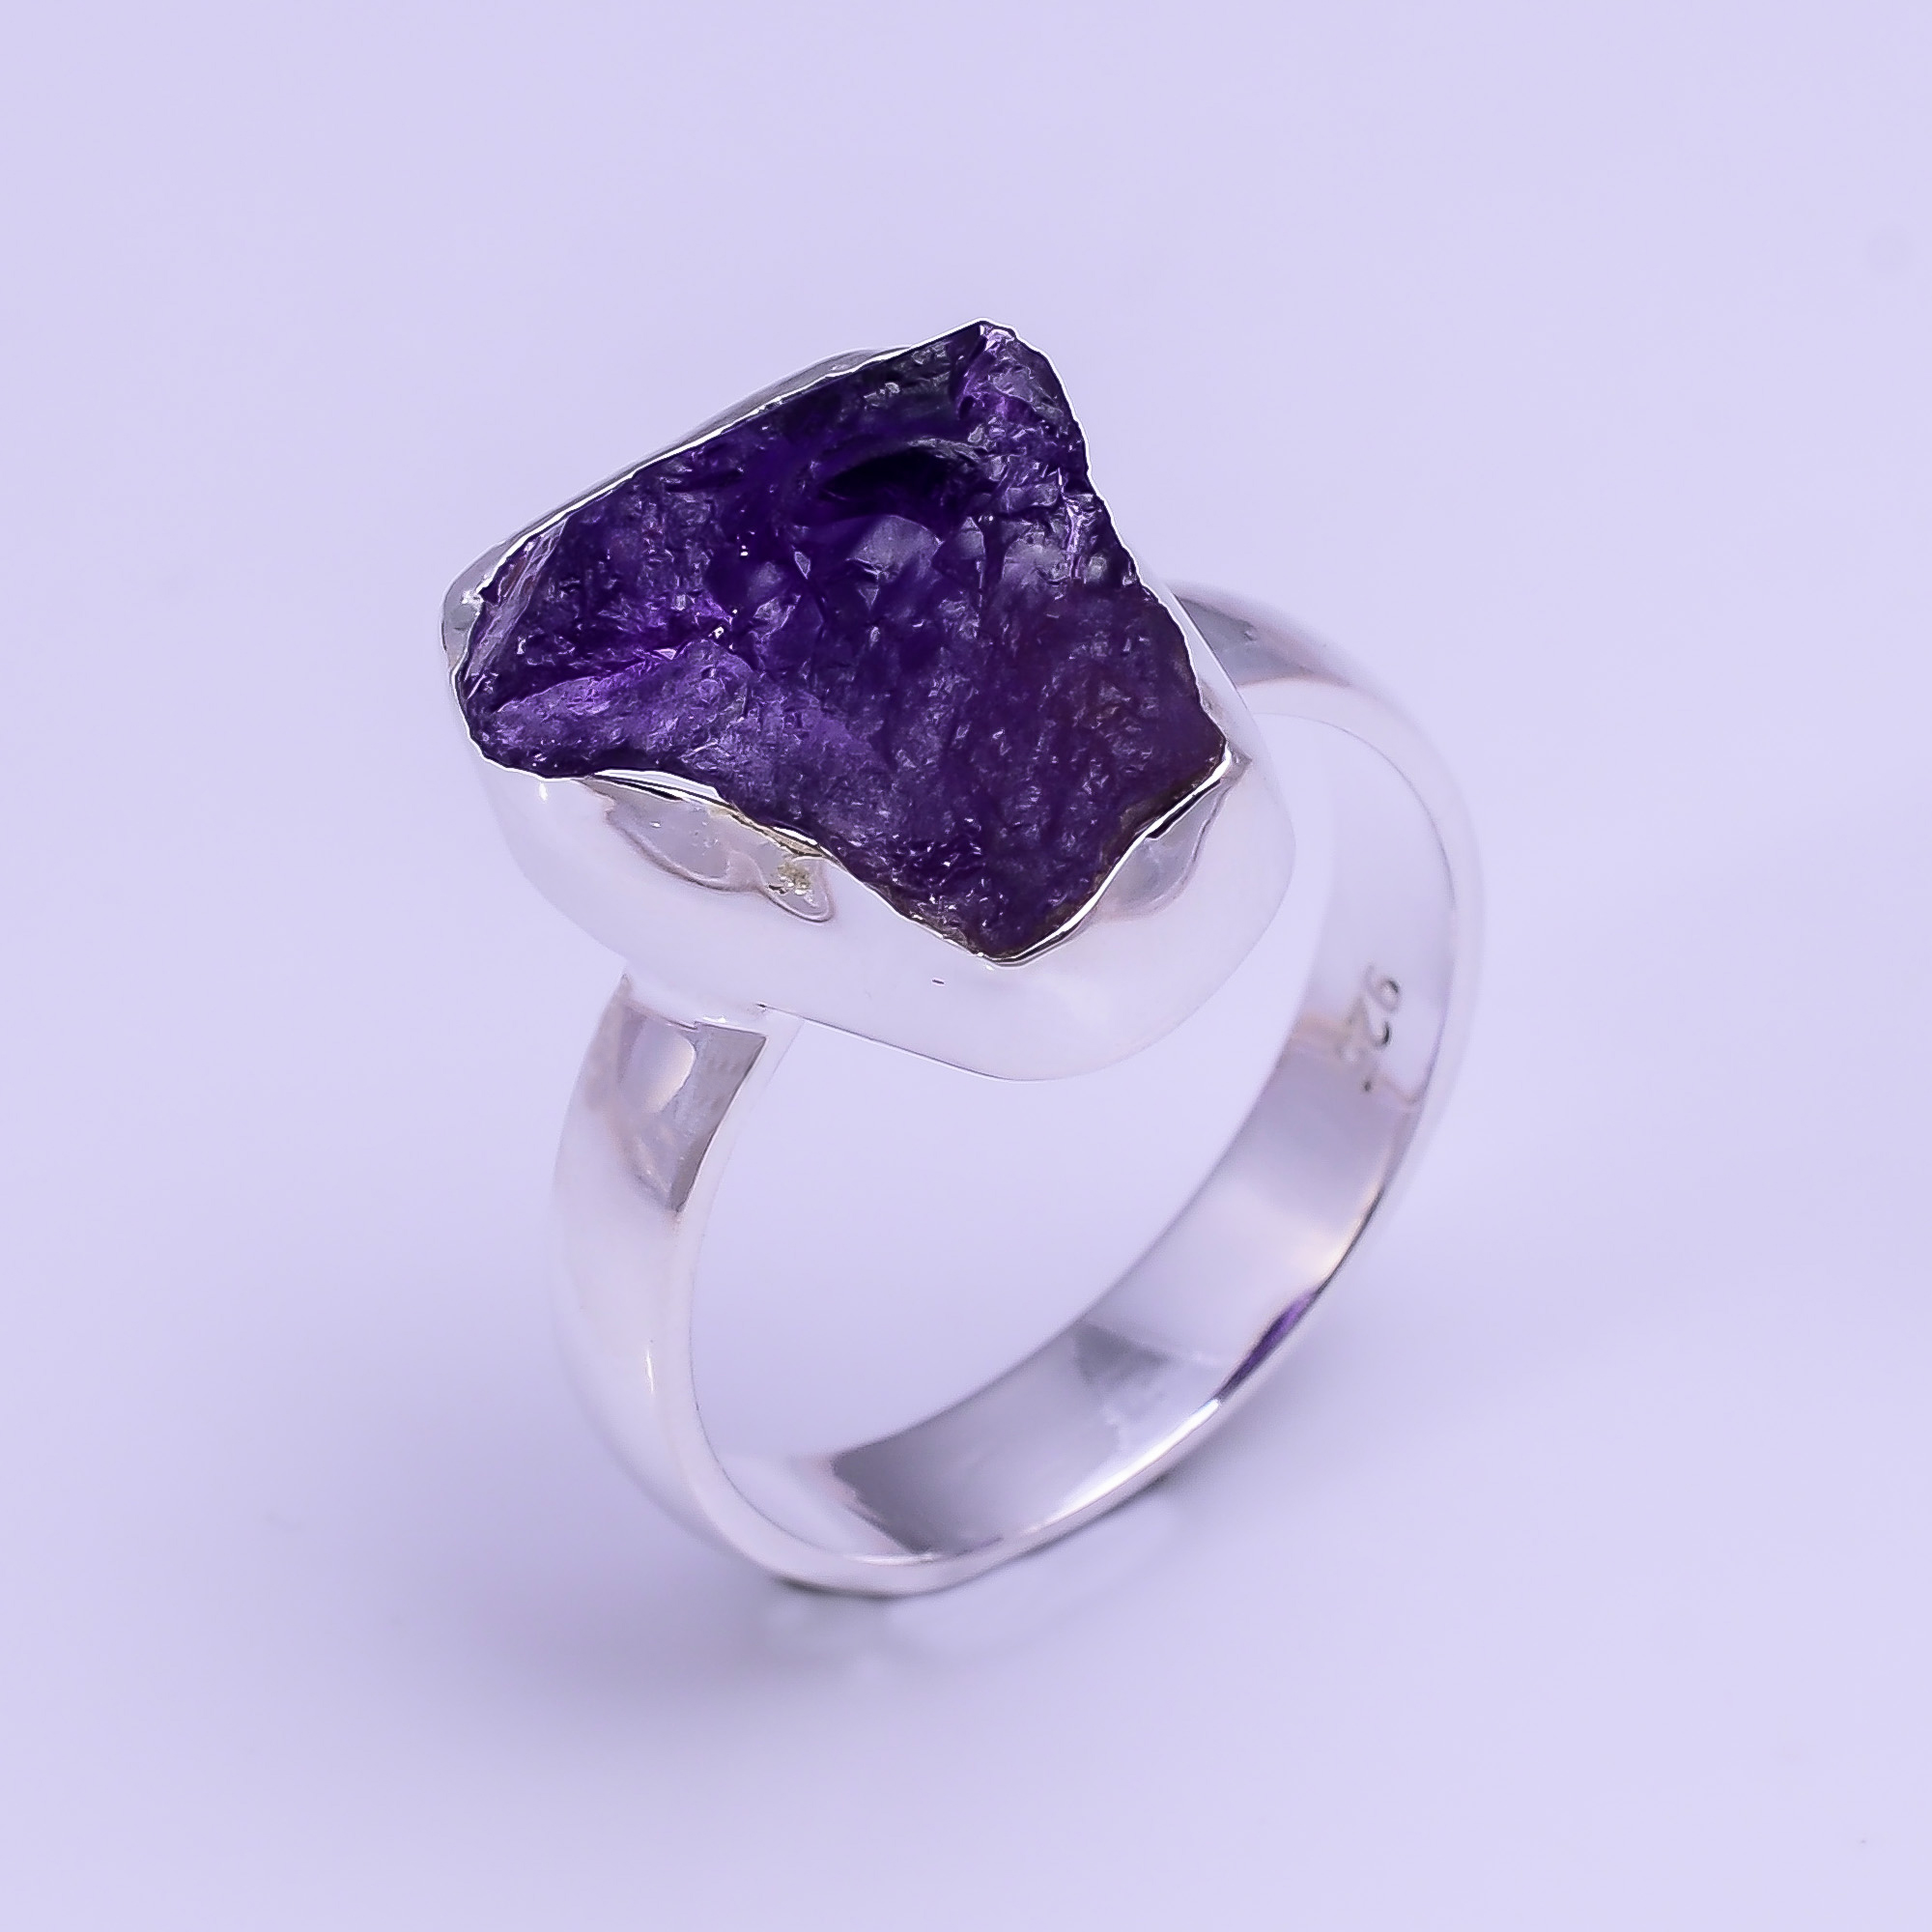 Natural Amethyst Raw Gemstone 925 Sterling Silver Ring Size US 6.75